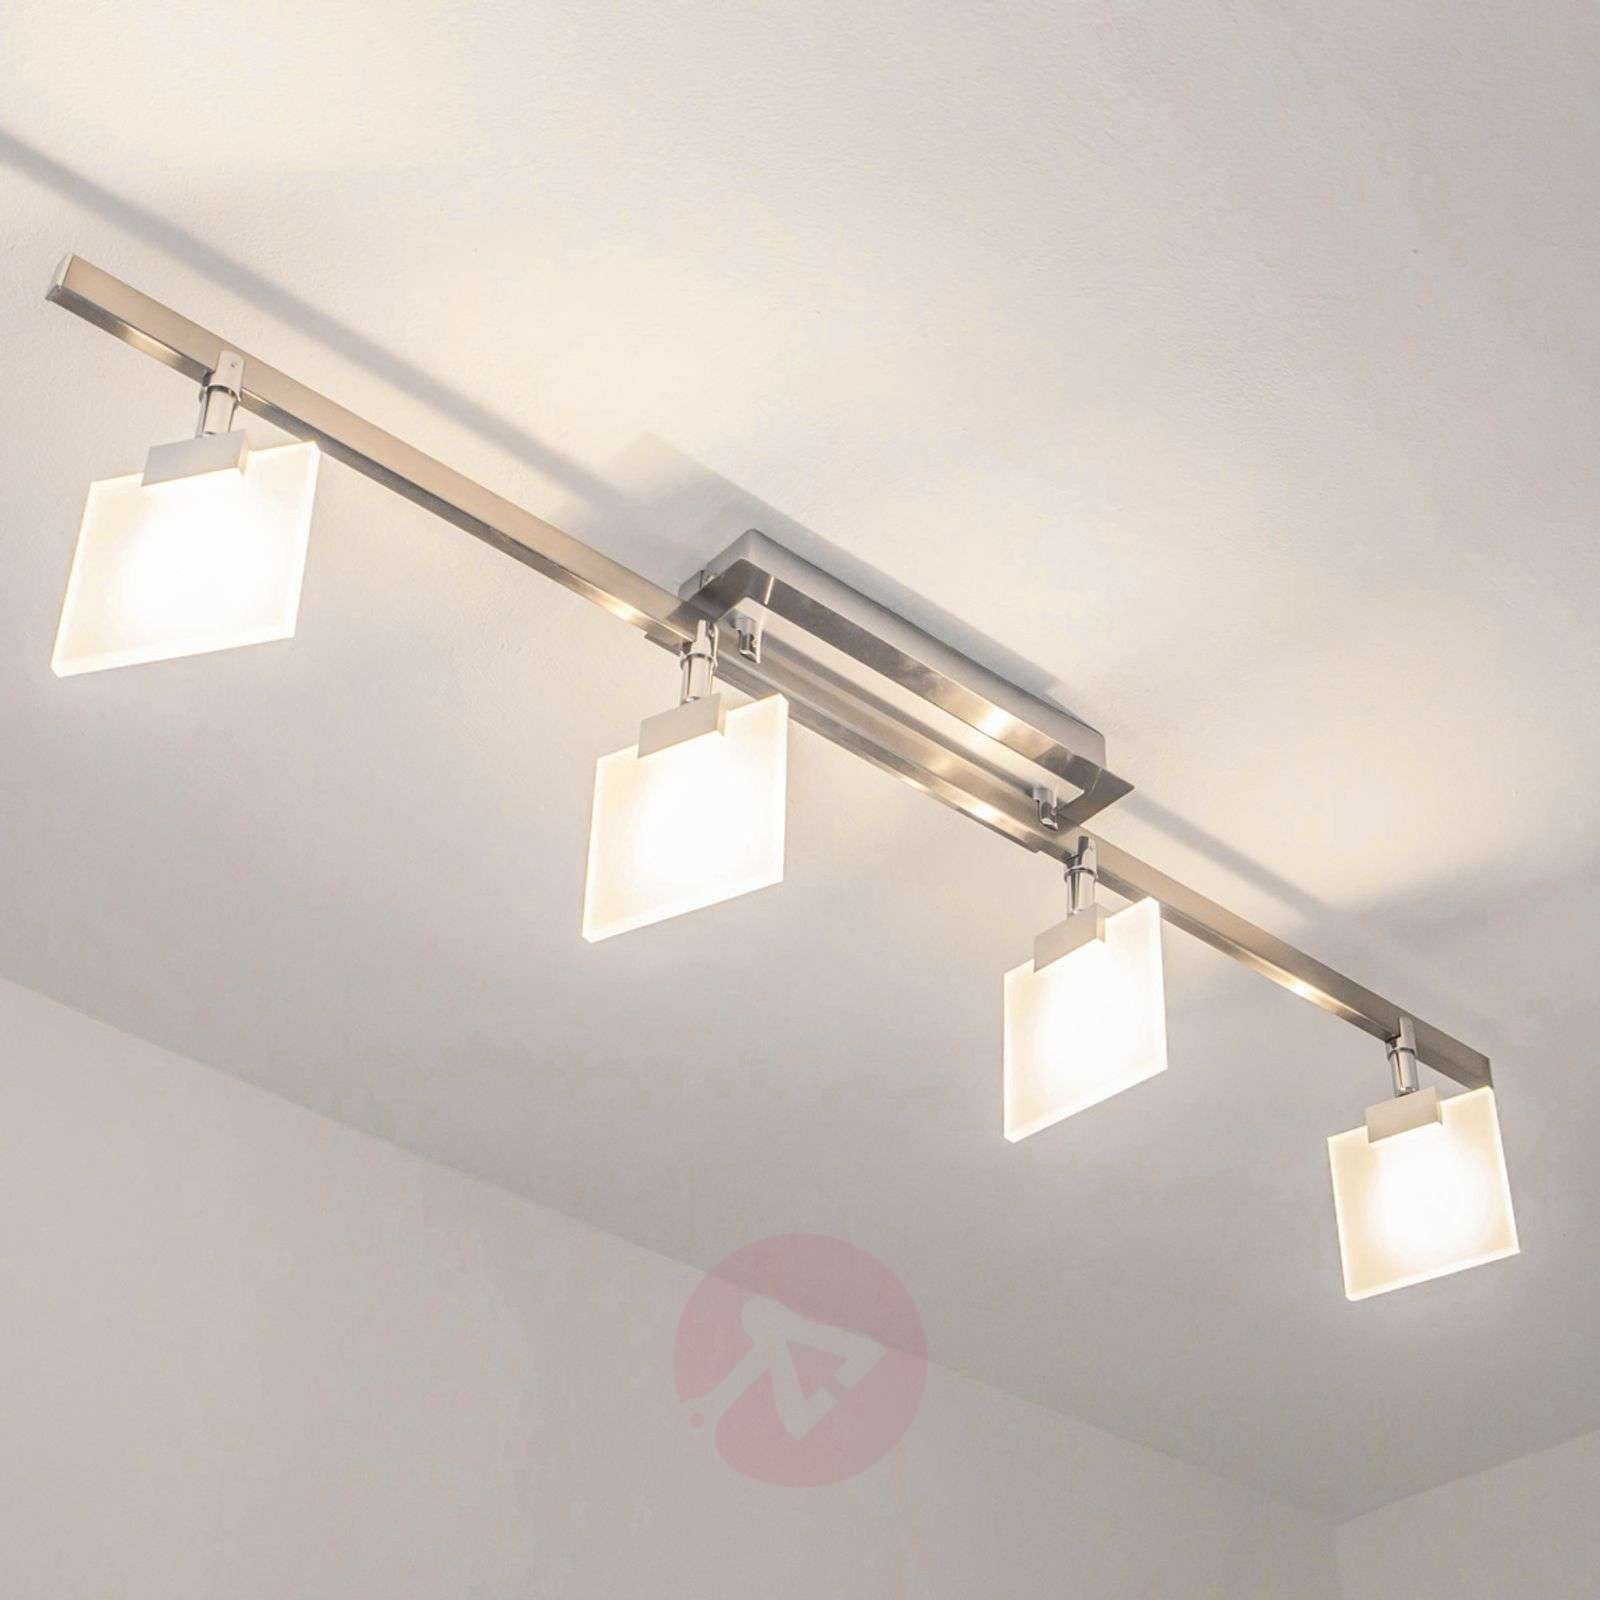 Luci a led per soffitto gi46 pineglen for Lampade led per cucina